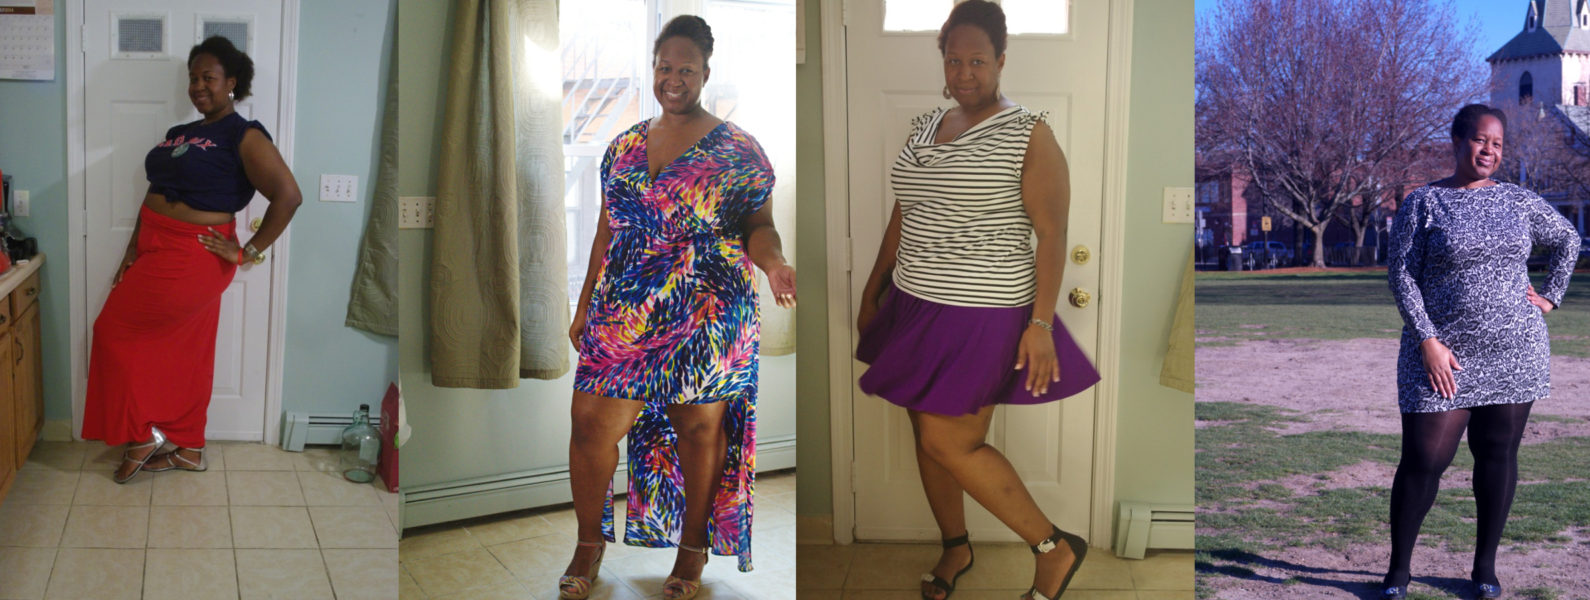 Maxi or mini - which do you prefer? Body positive sewing & style on Making the Flame.